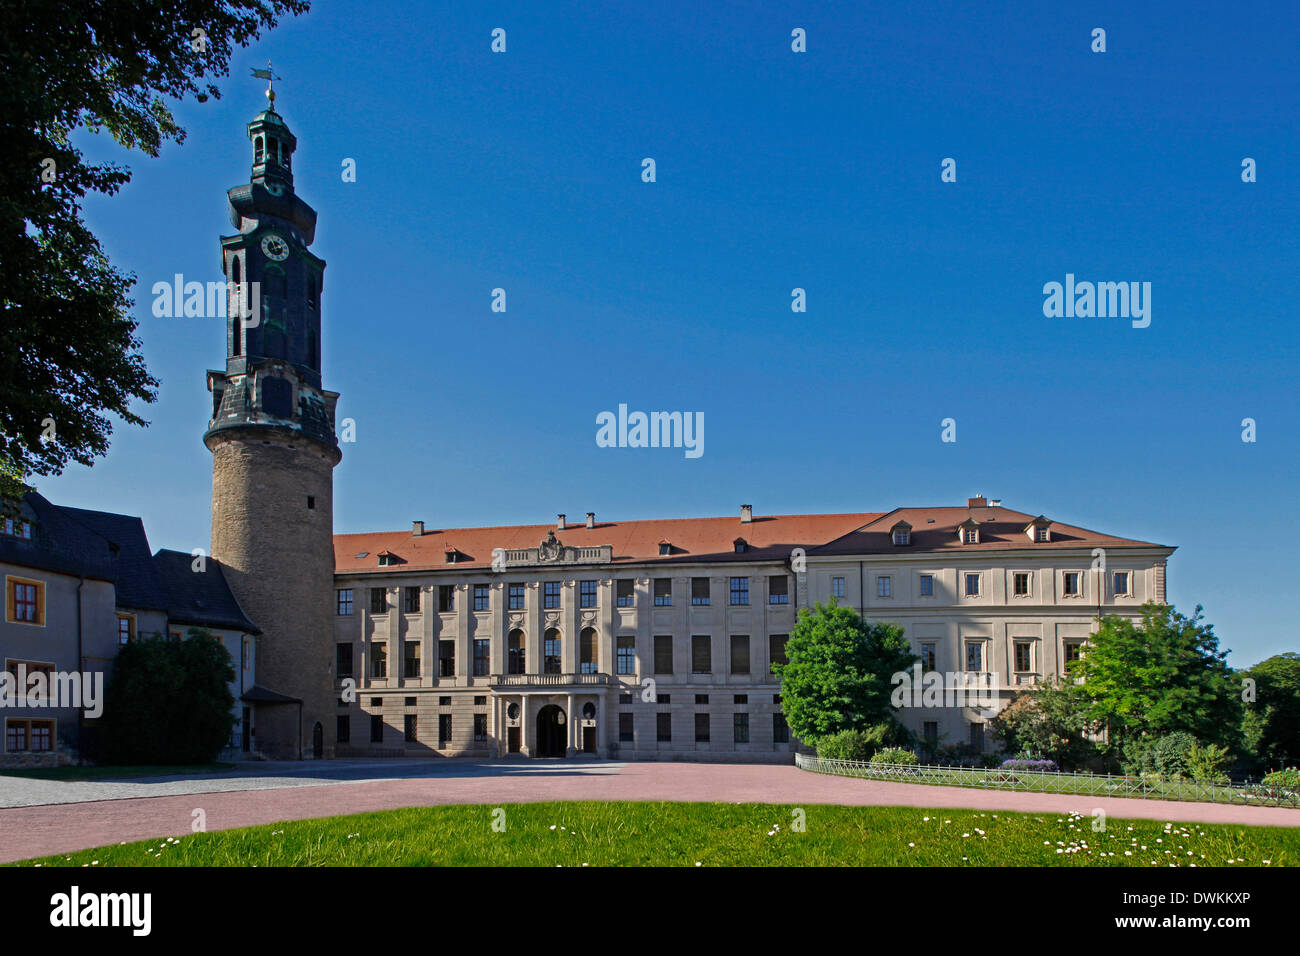 Due to its function as ducal residence, Weimar (Thuringia, Germany) is rich in early-modern castles and palaces. The biggest one is the City Castle at Burgplatz in city centre. The today's four-wing building was started after a great fire in 1774. The towe - Stock Image